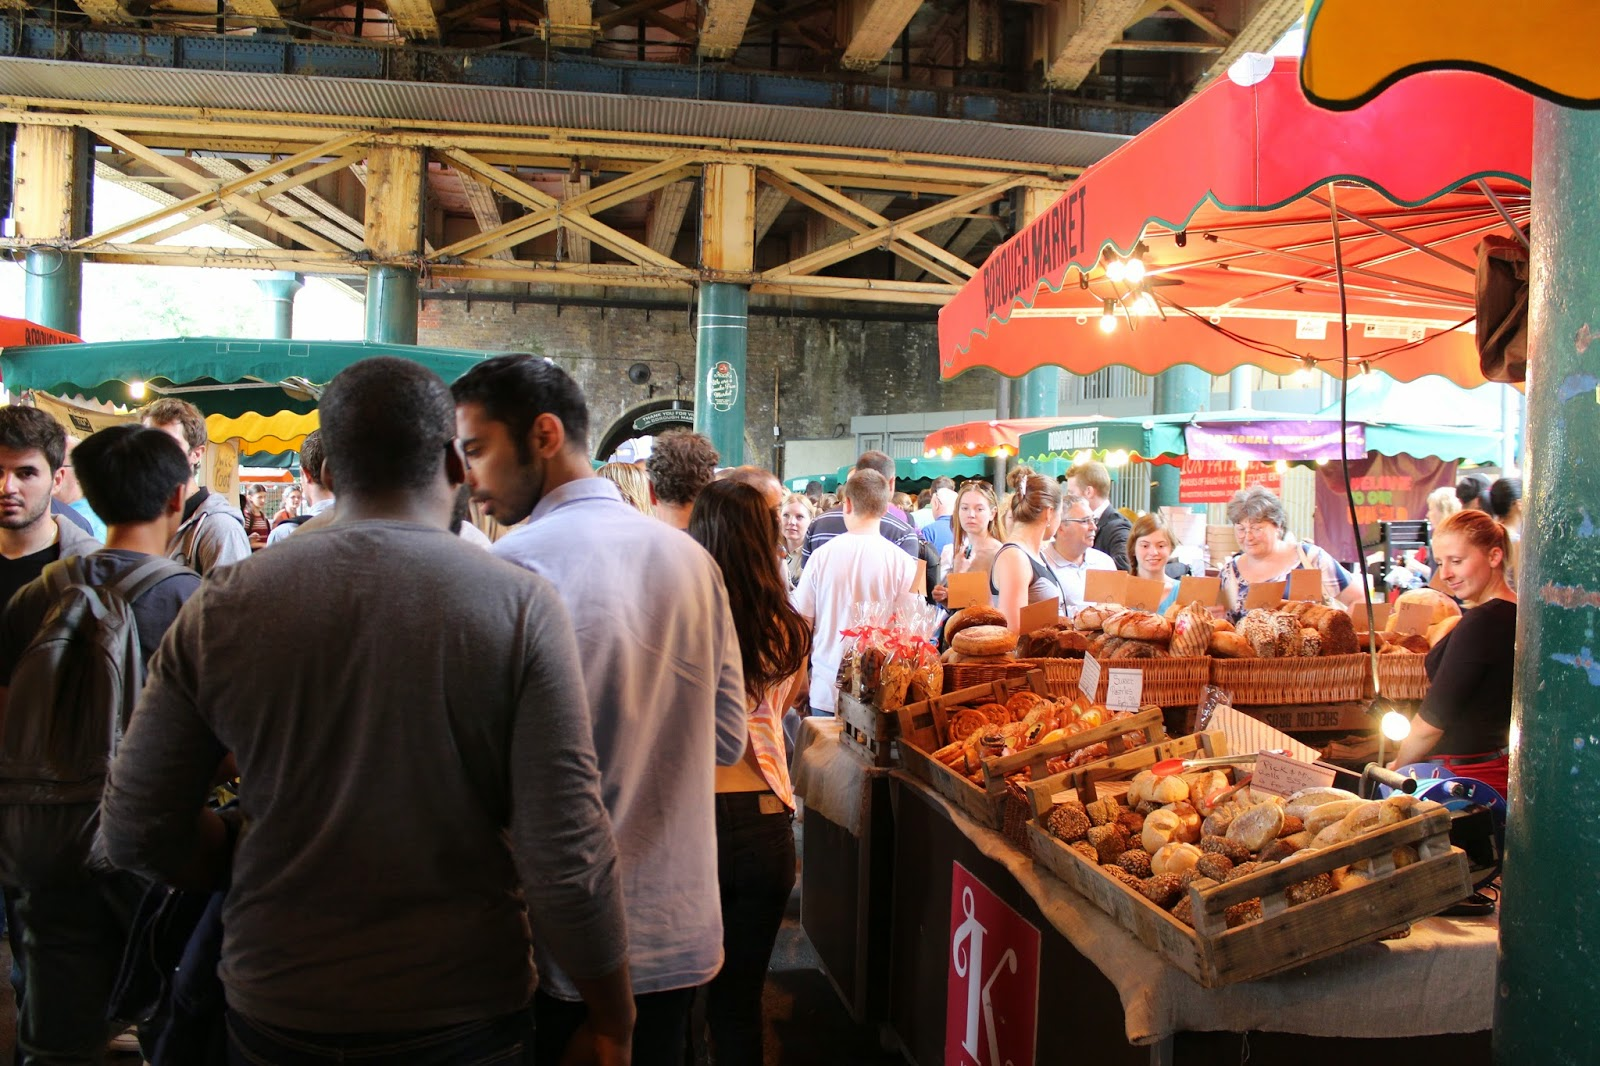 Borough Market foodies